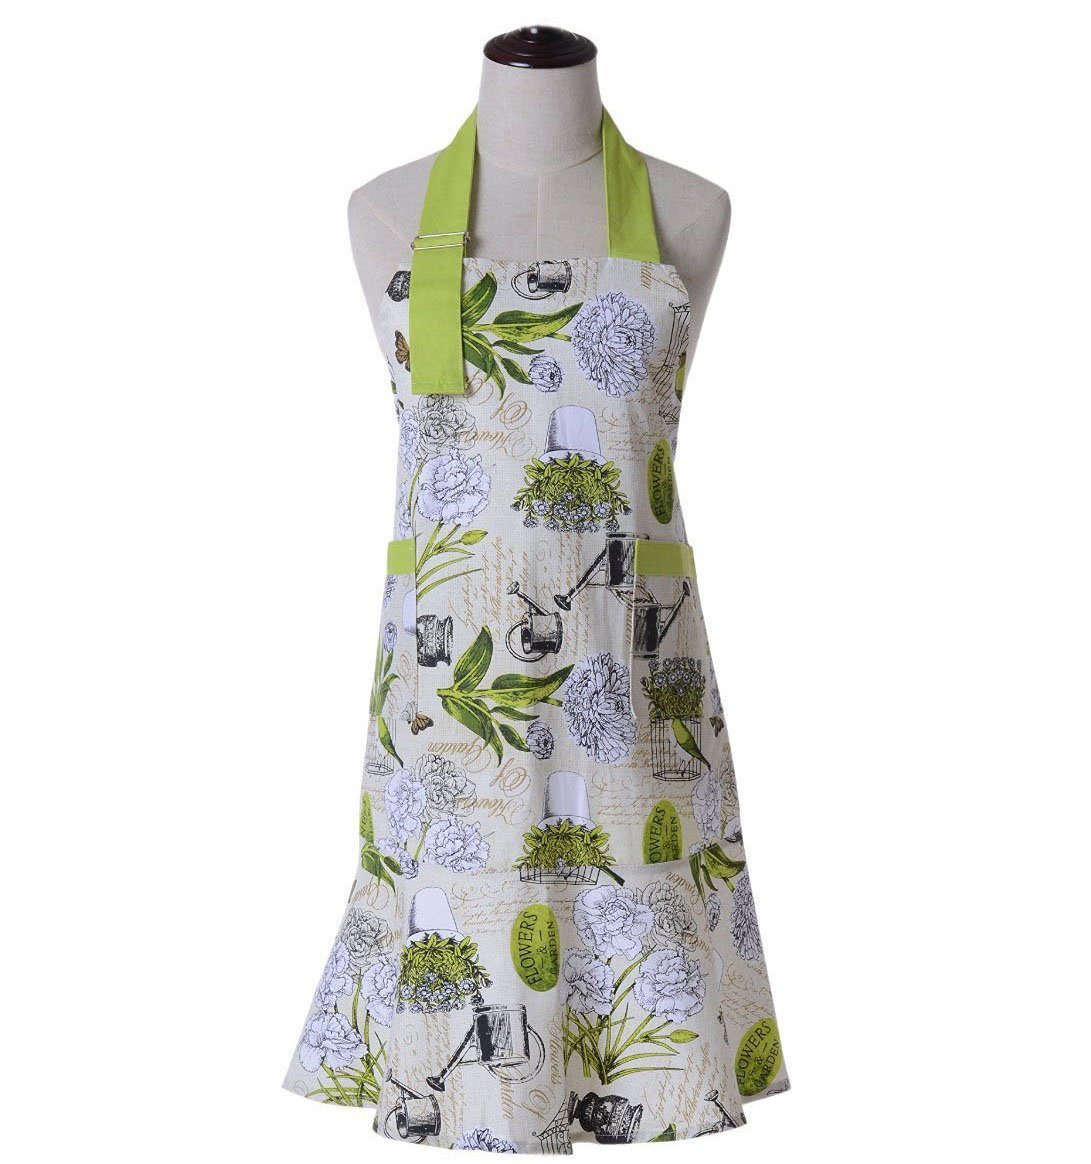 Housewife Vintage Bib Anthropologie Grilling Chef Girl Postoral Style Kitchen Cooking Aprons for Women, Perfect for Gift 0